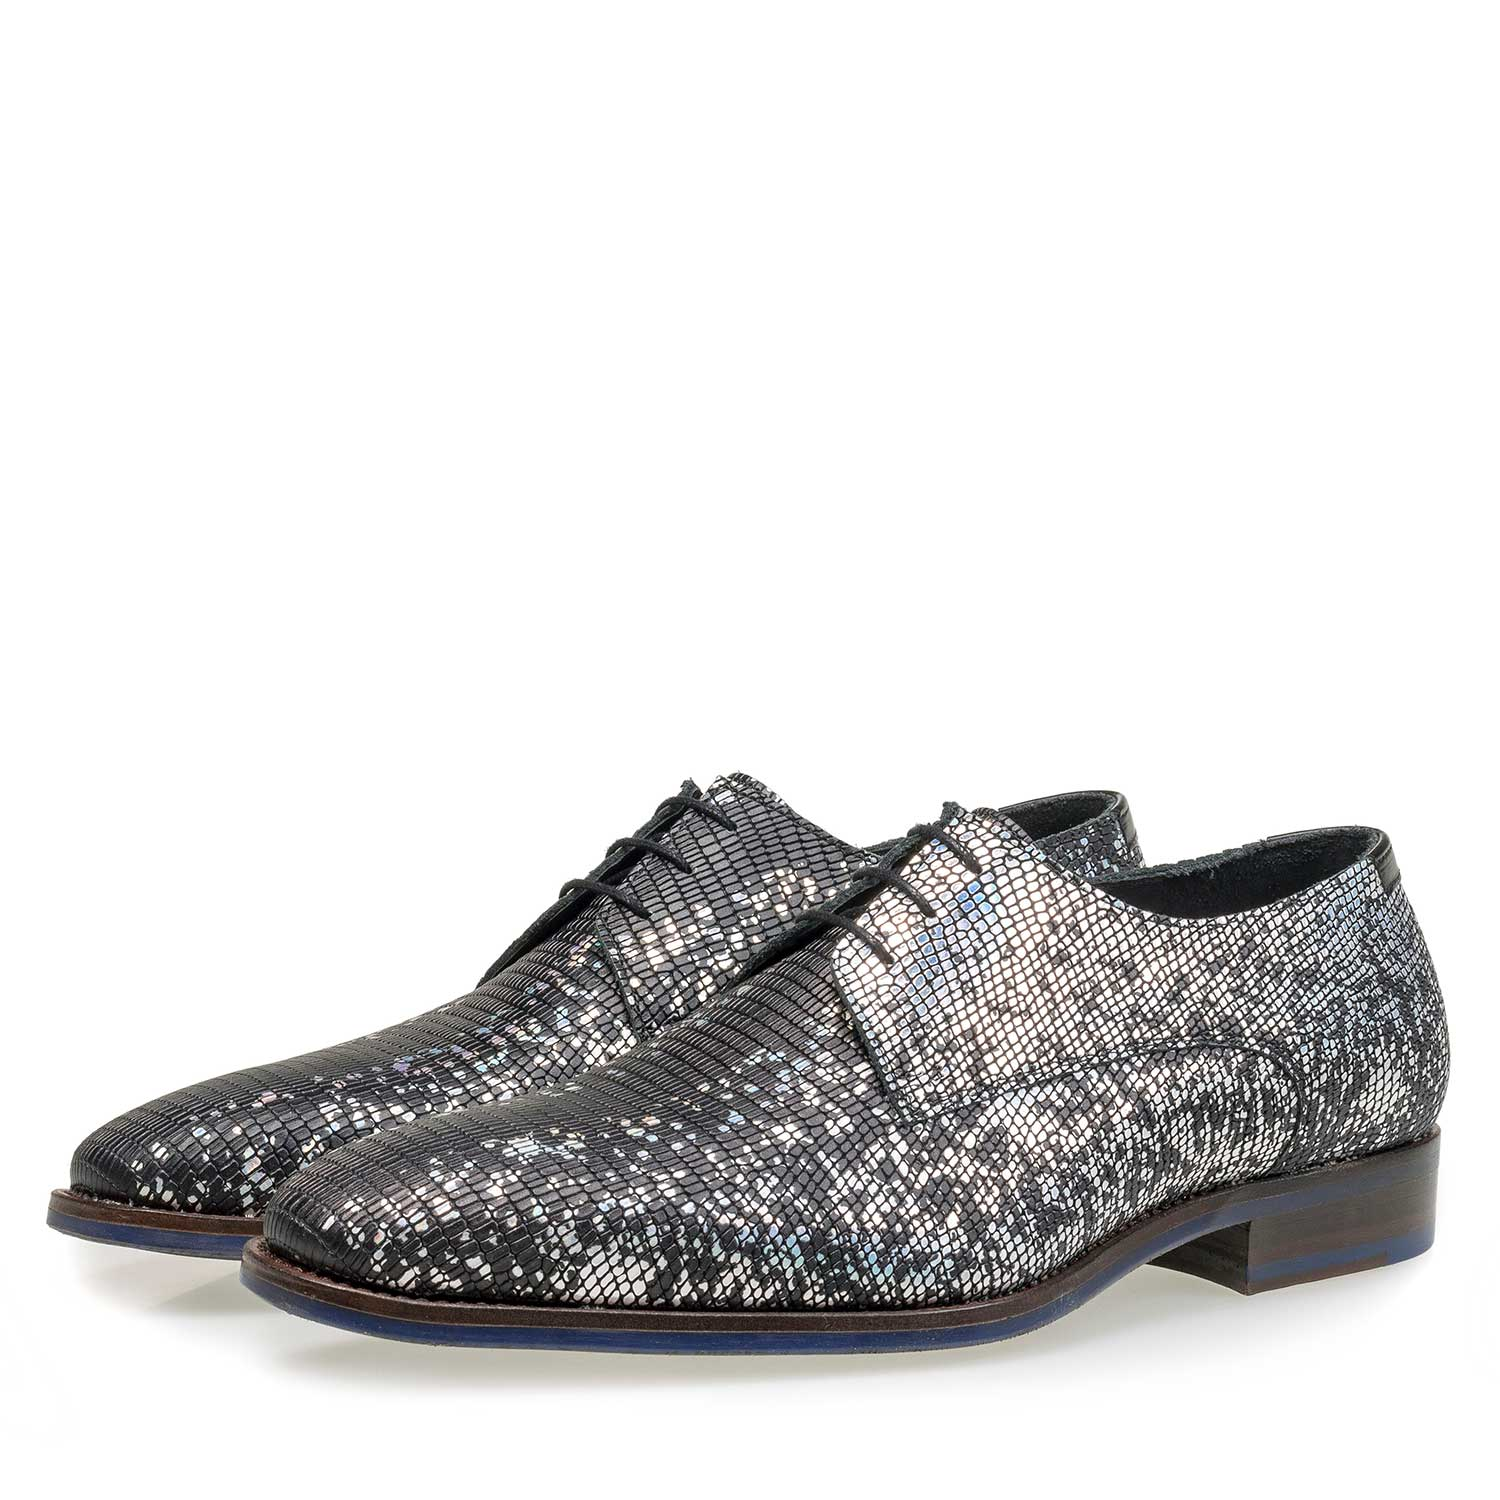 18097/00 - Black premium lace shoe with silver metallic print